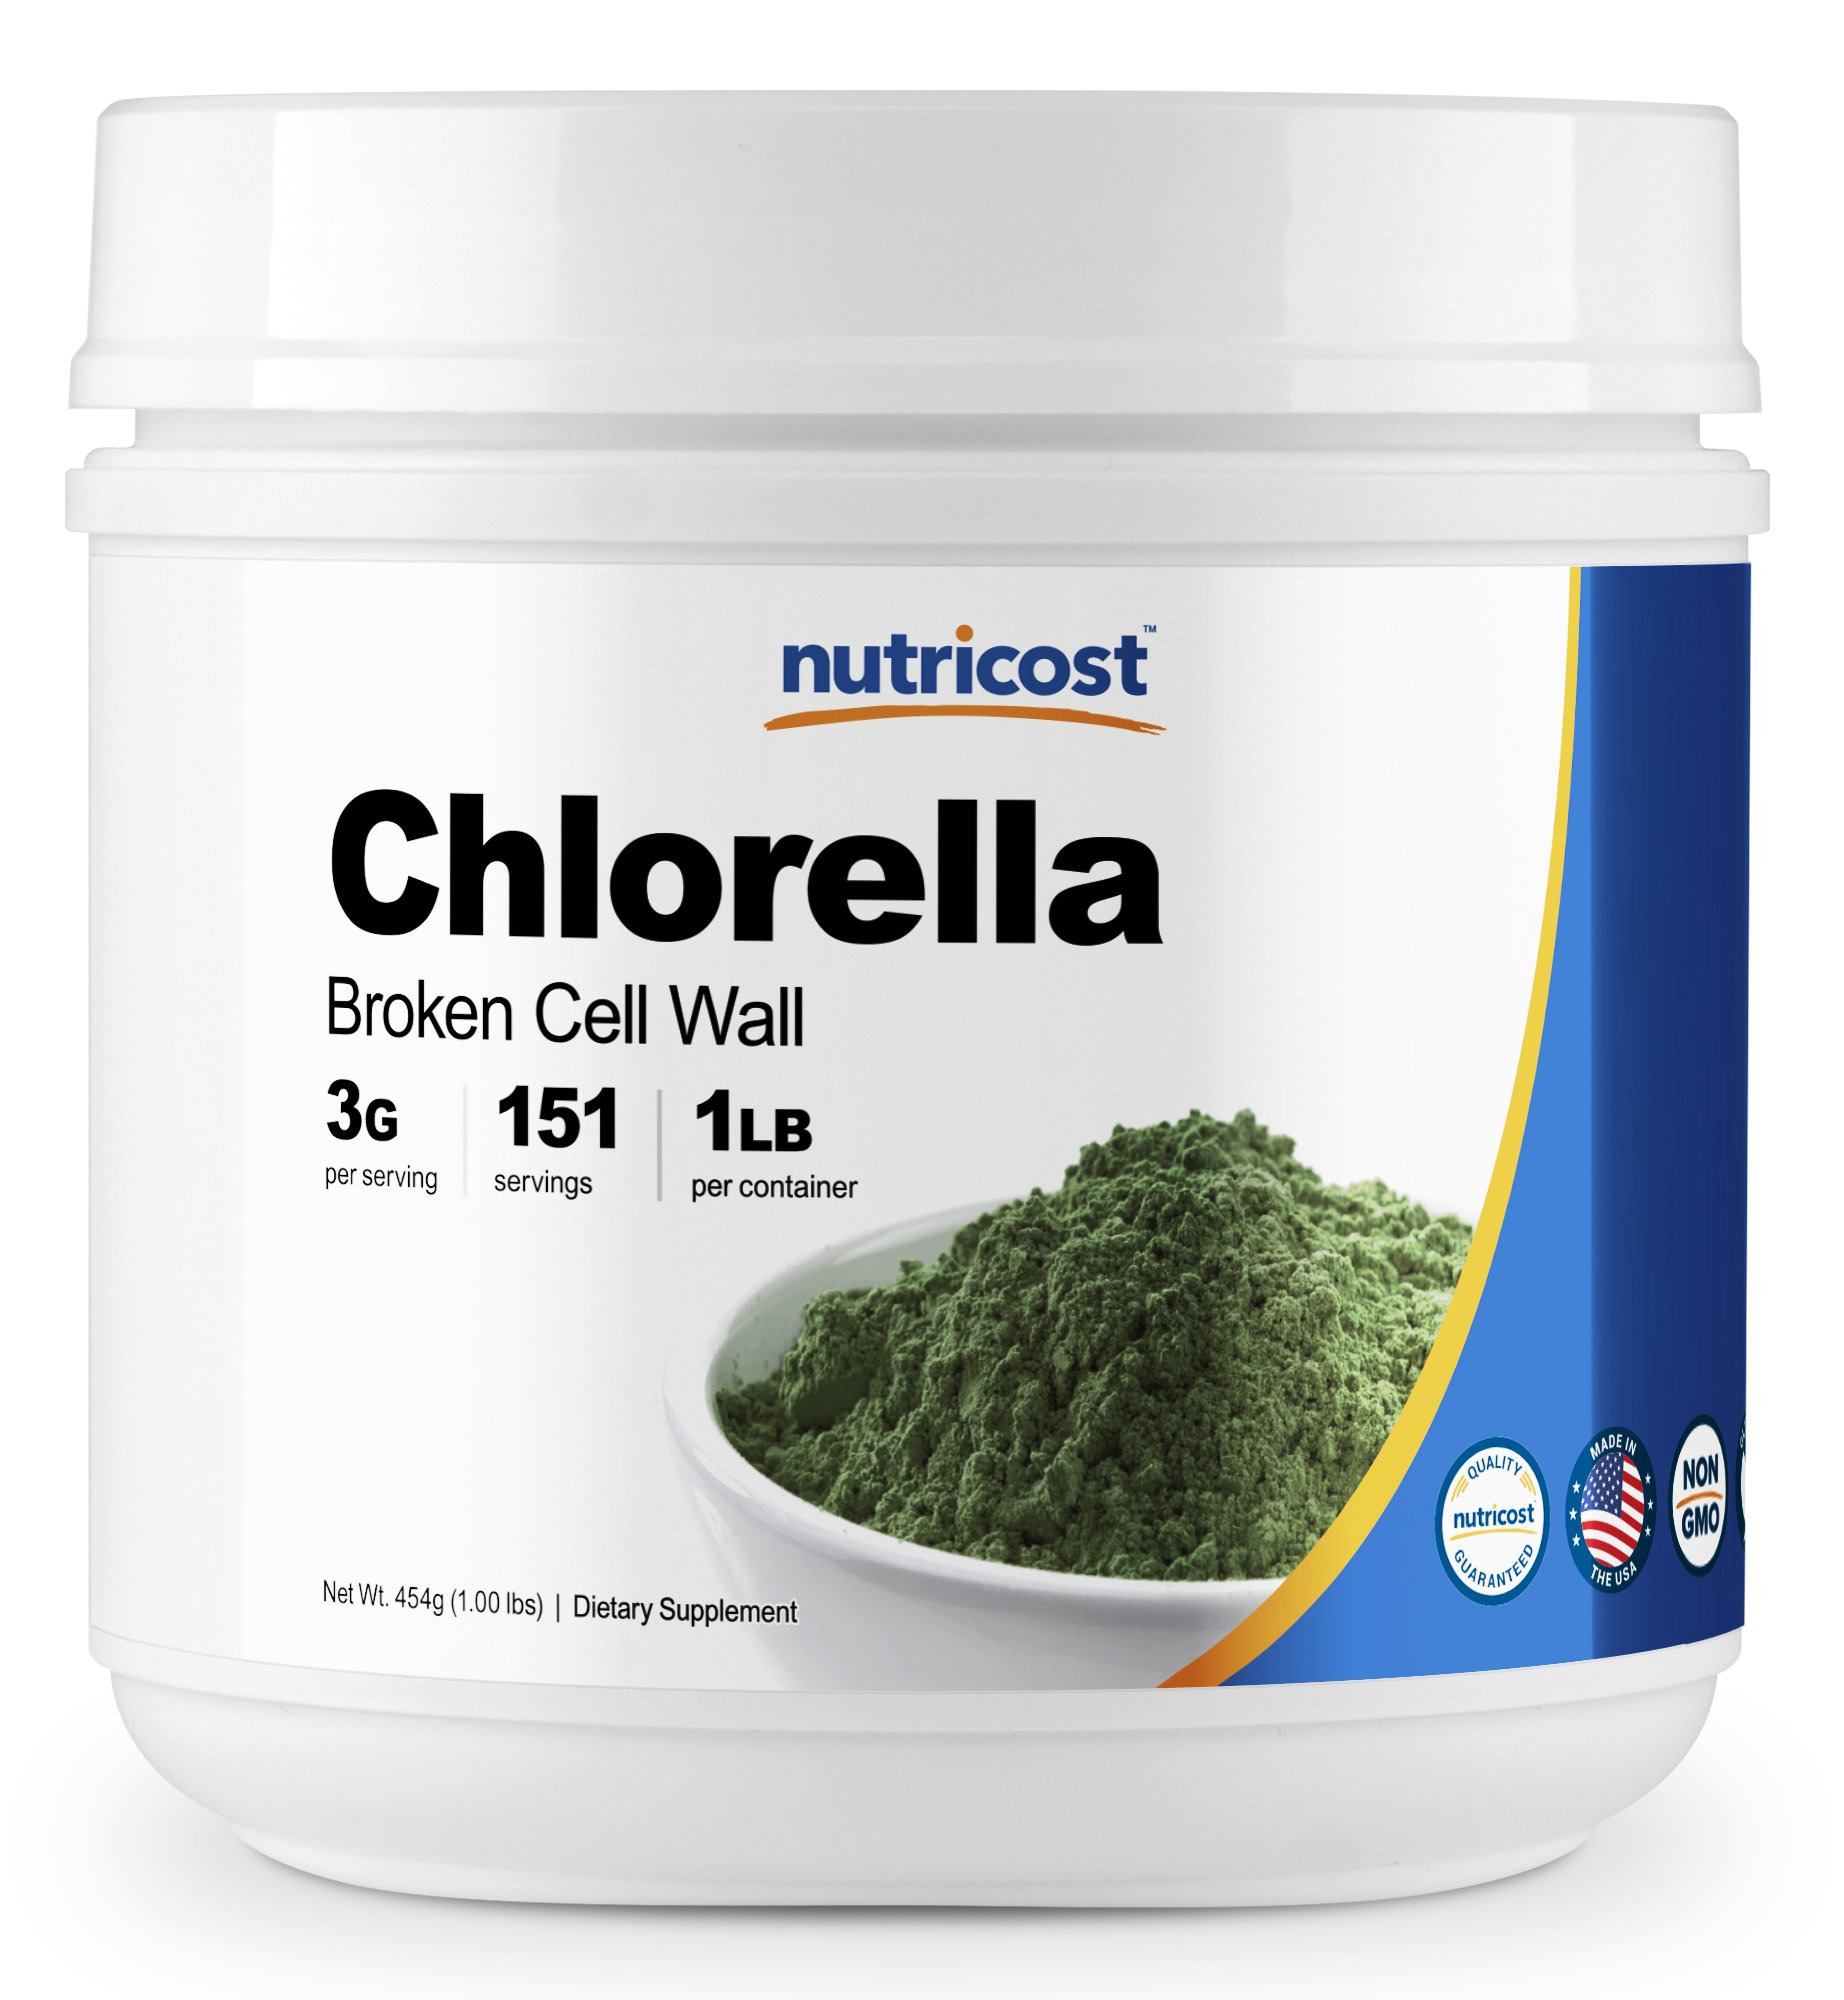 Nutricost Pure Chlorella Powder 16oz - 3000mg per Serving - Immune System Boost and Skin Care - High Quality